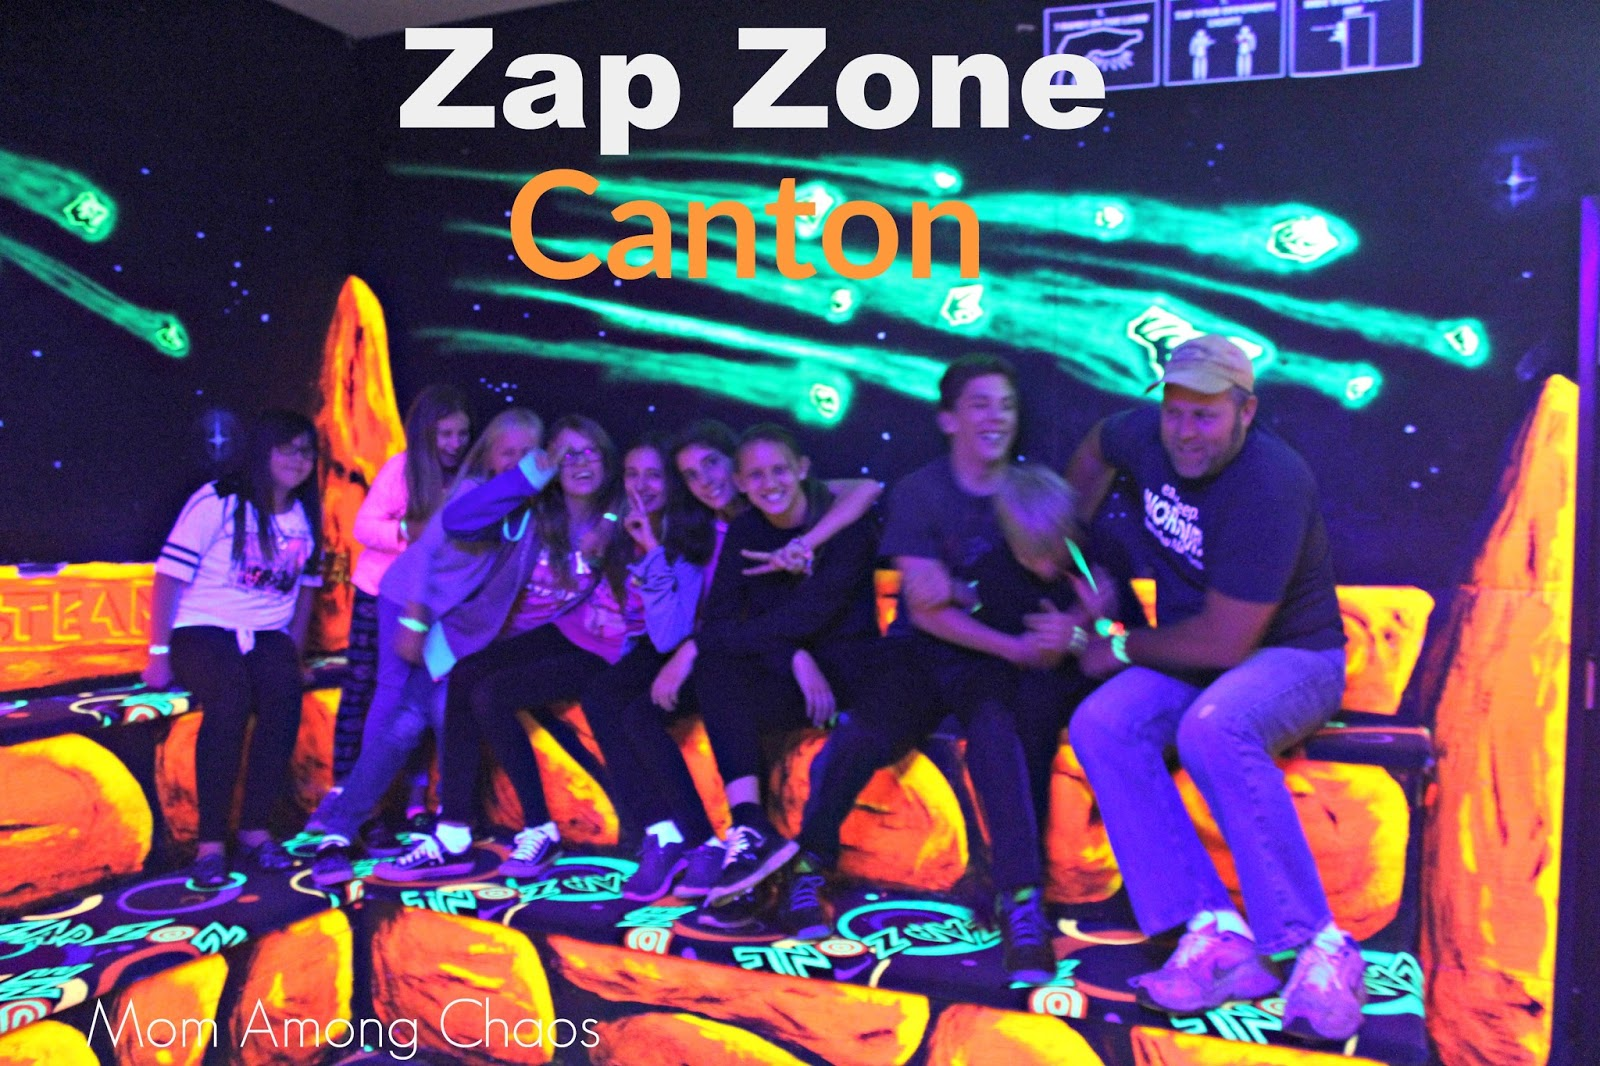 image regarding Zap Zone Printable Coupons identified as Zap zone discount codes : Saddleback bowling discount coupons